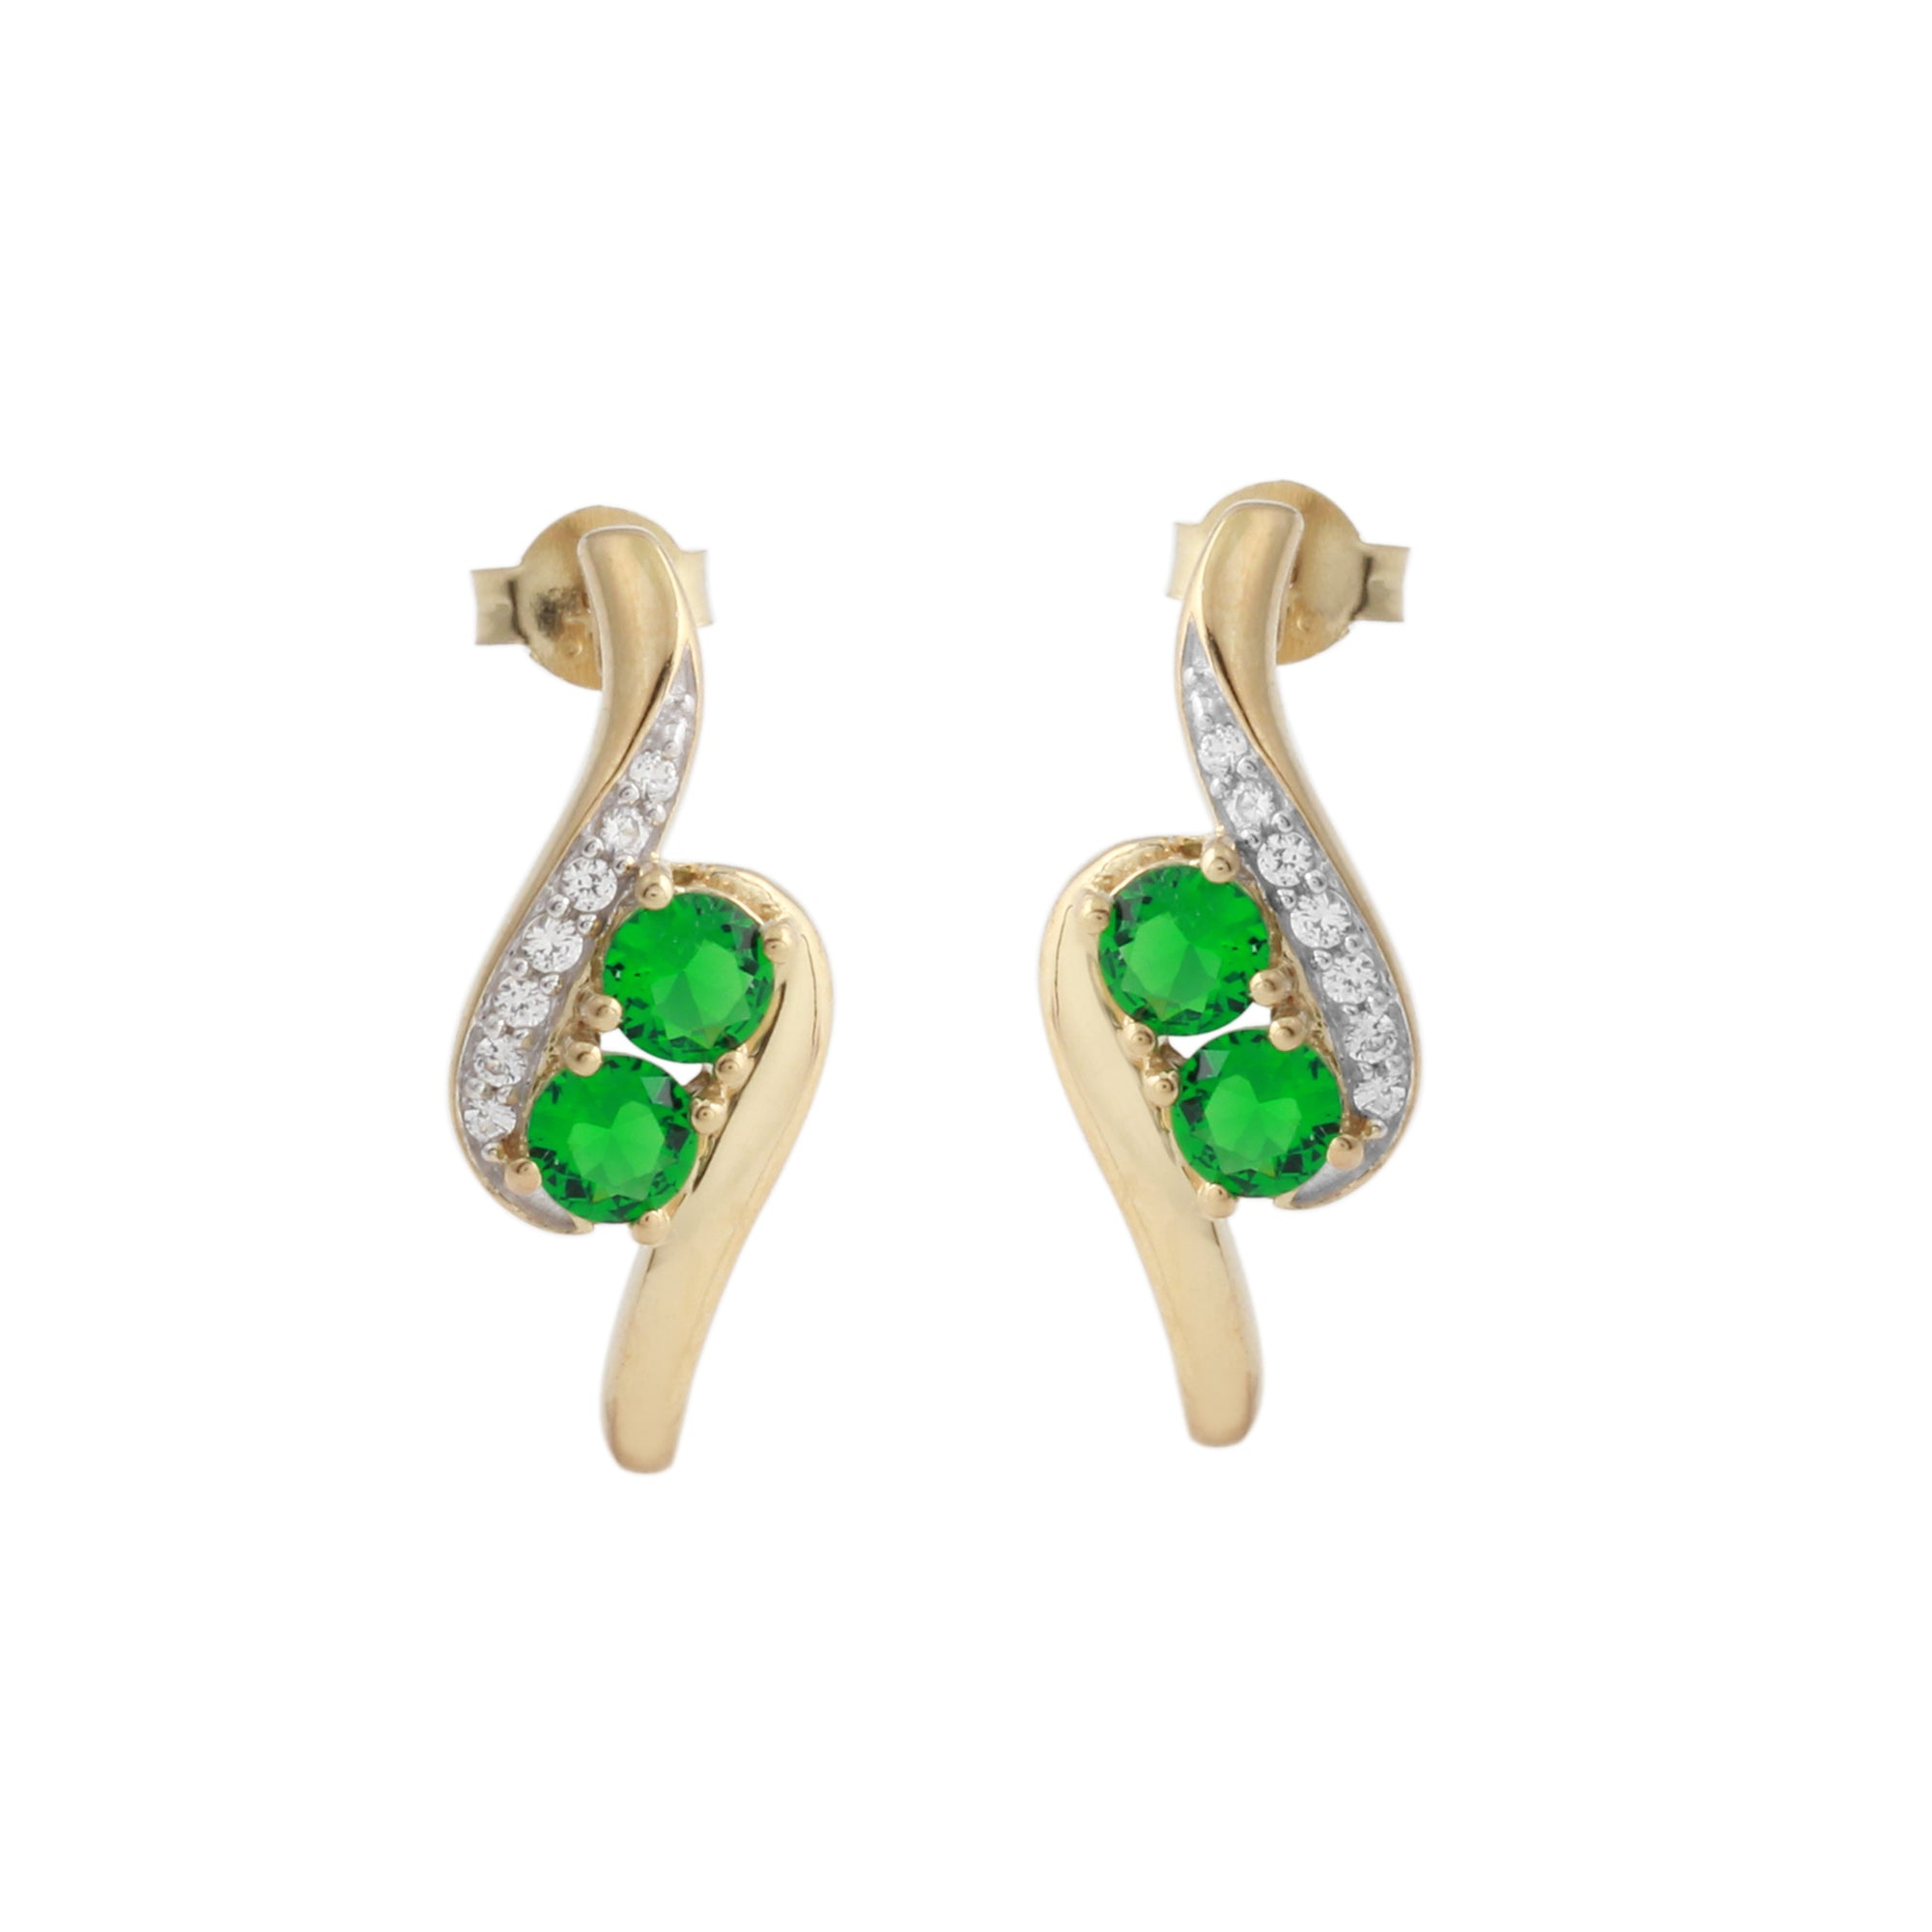 earrings jewellery centers earring products mariacanale snowflake with emerald